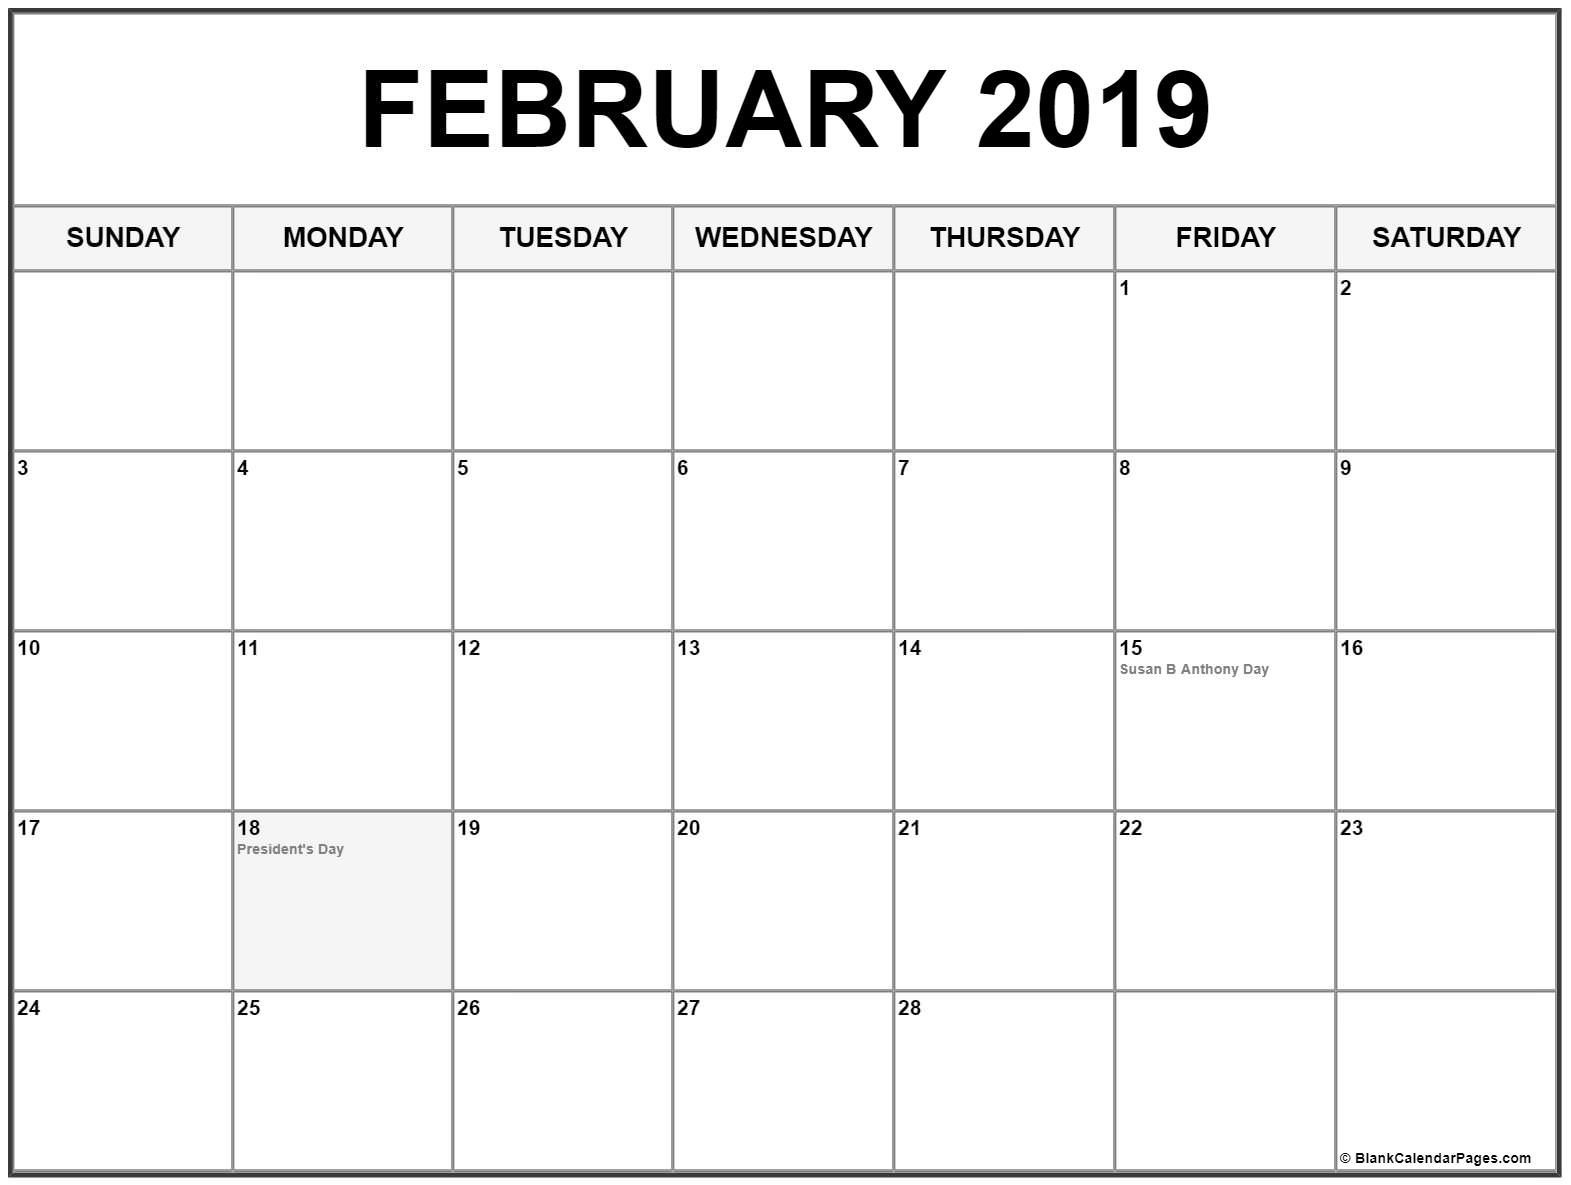 February 2019 Calendar With Holidays #february #2019 #calendar_Blank Calendar With Us Holidays